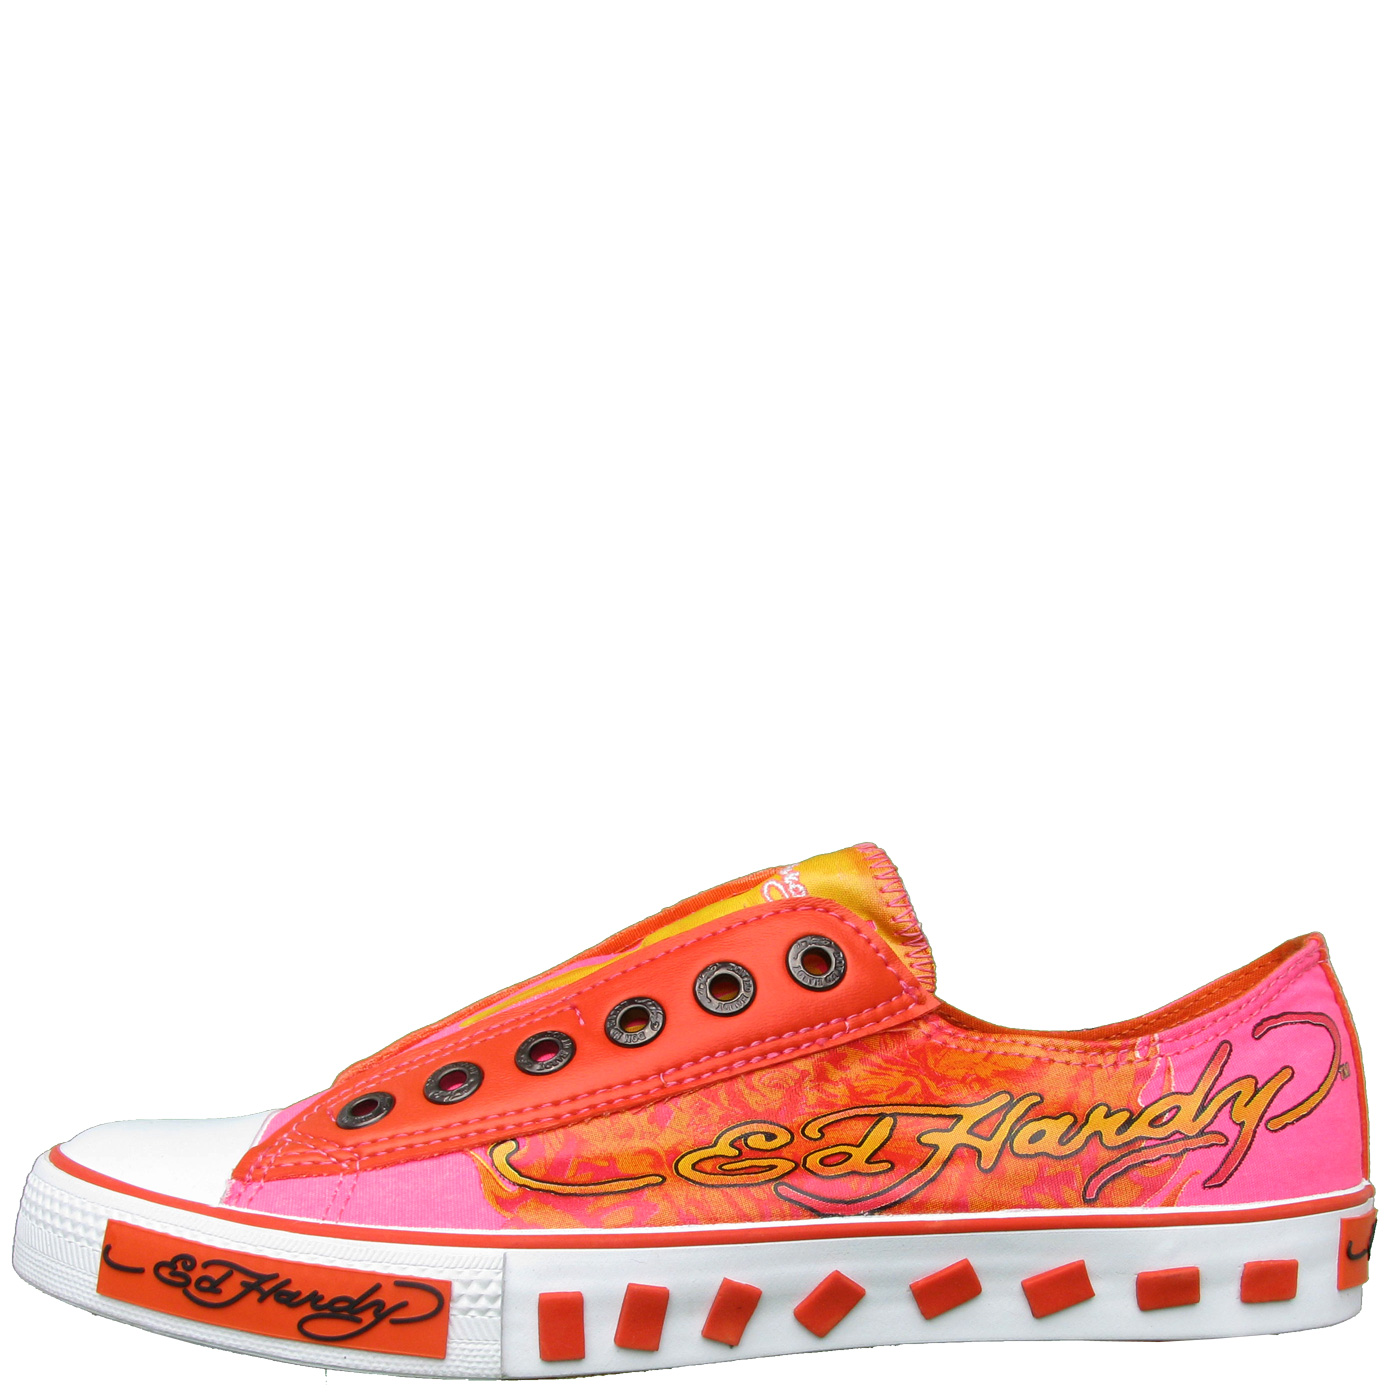 Ed Hardy Lowrise Van Nuys Shoe for Kids Girls - Orange